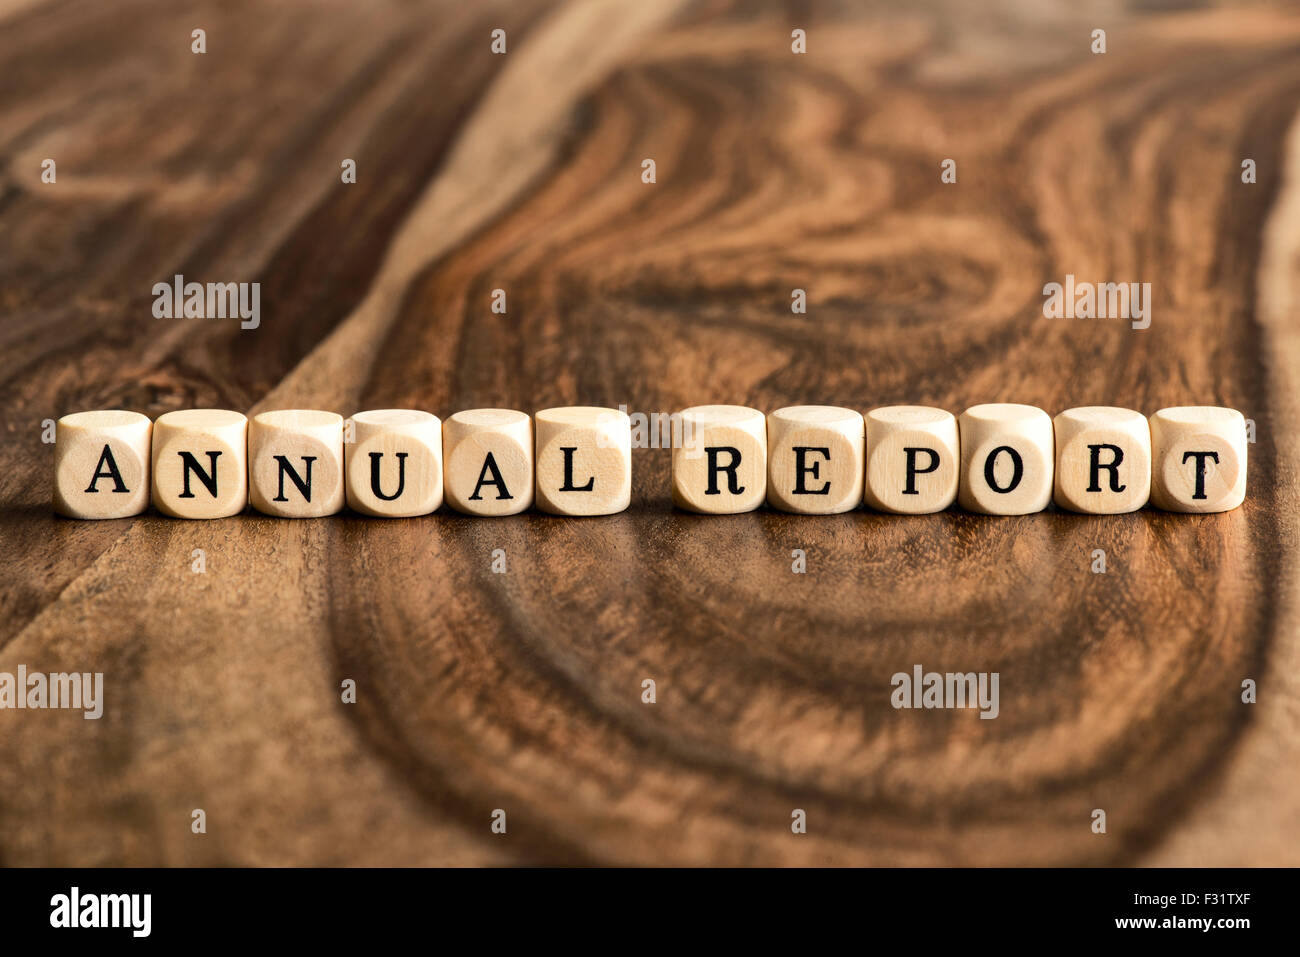 ANNUAL REPORT word background on wood blocks - Stock Image